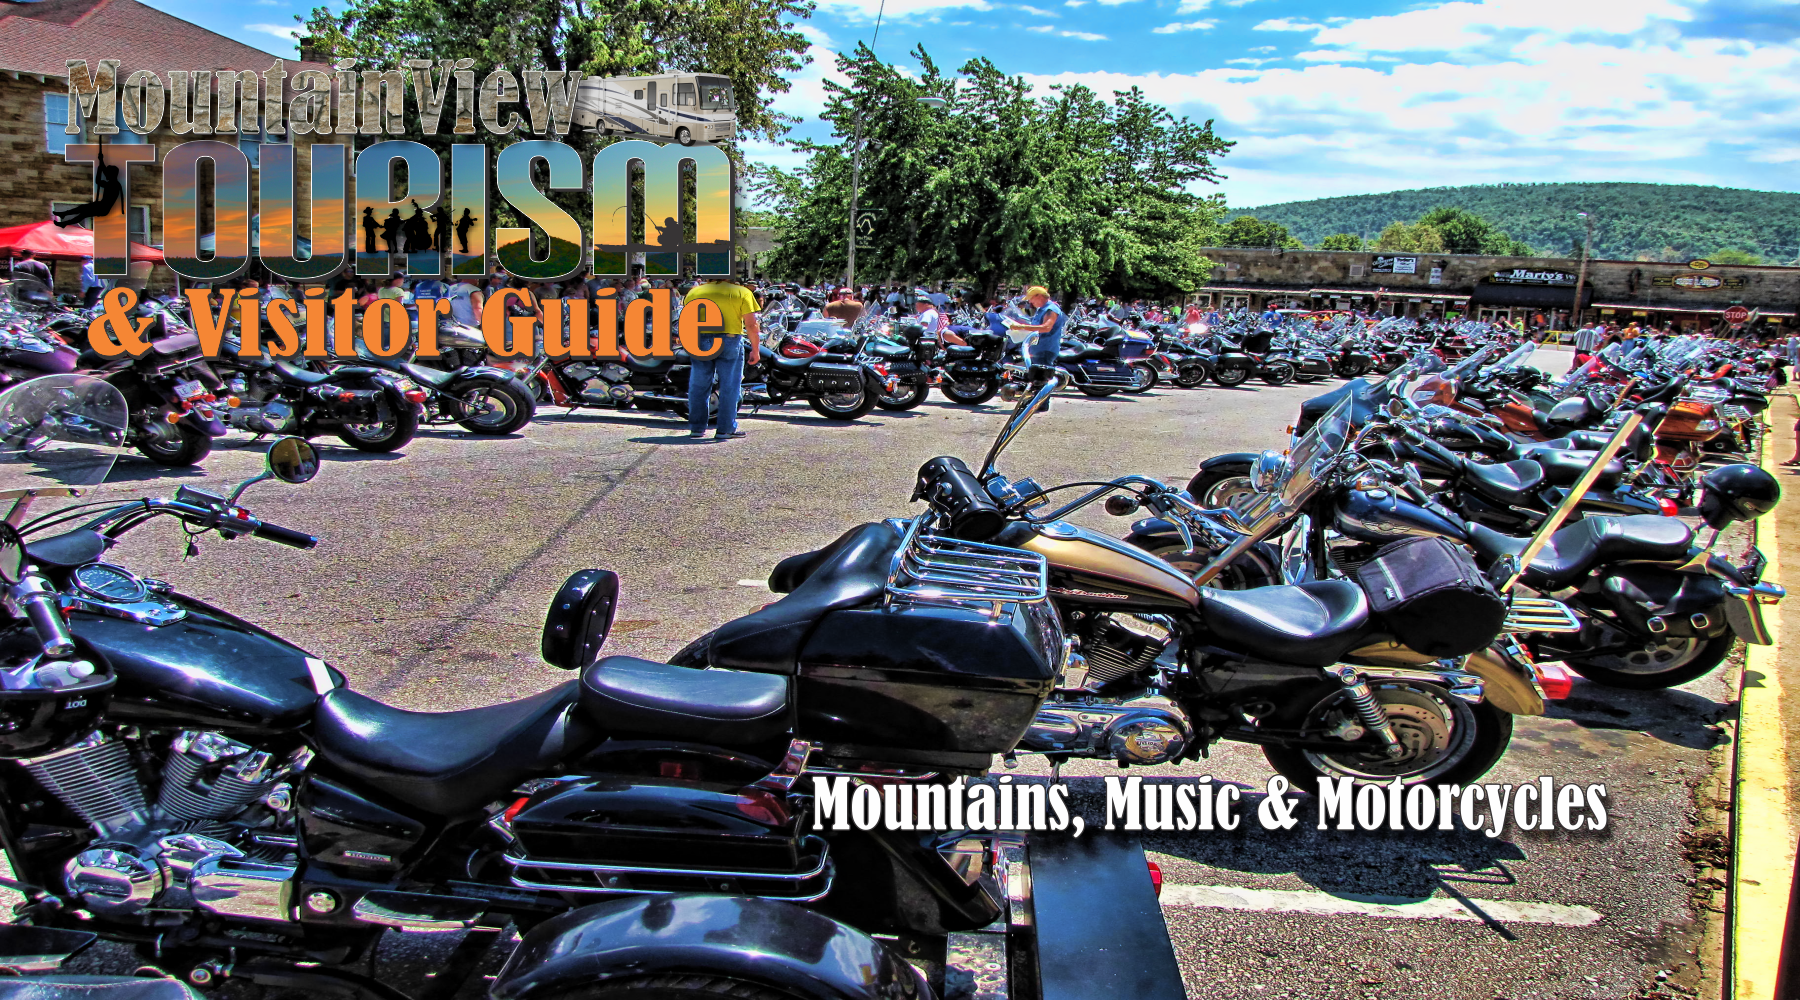 Mountains Music & Motorcycles